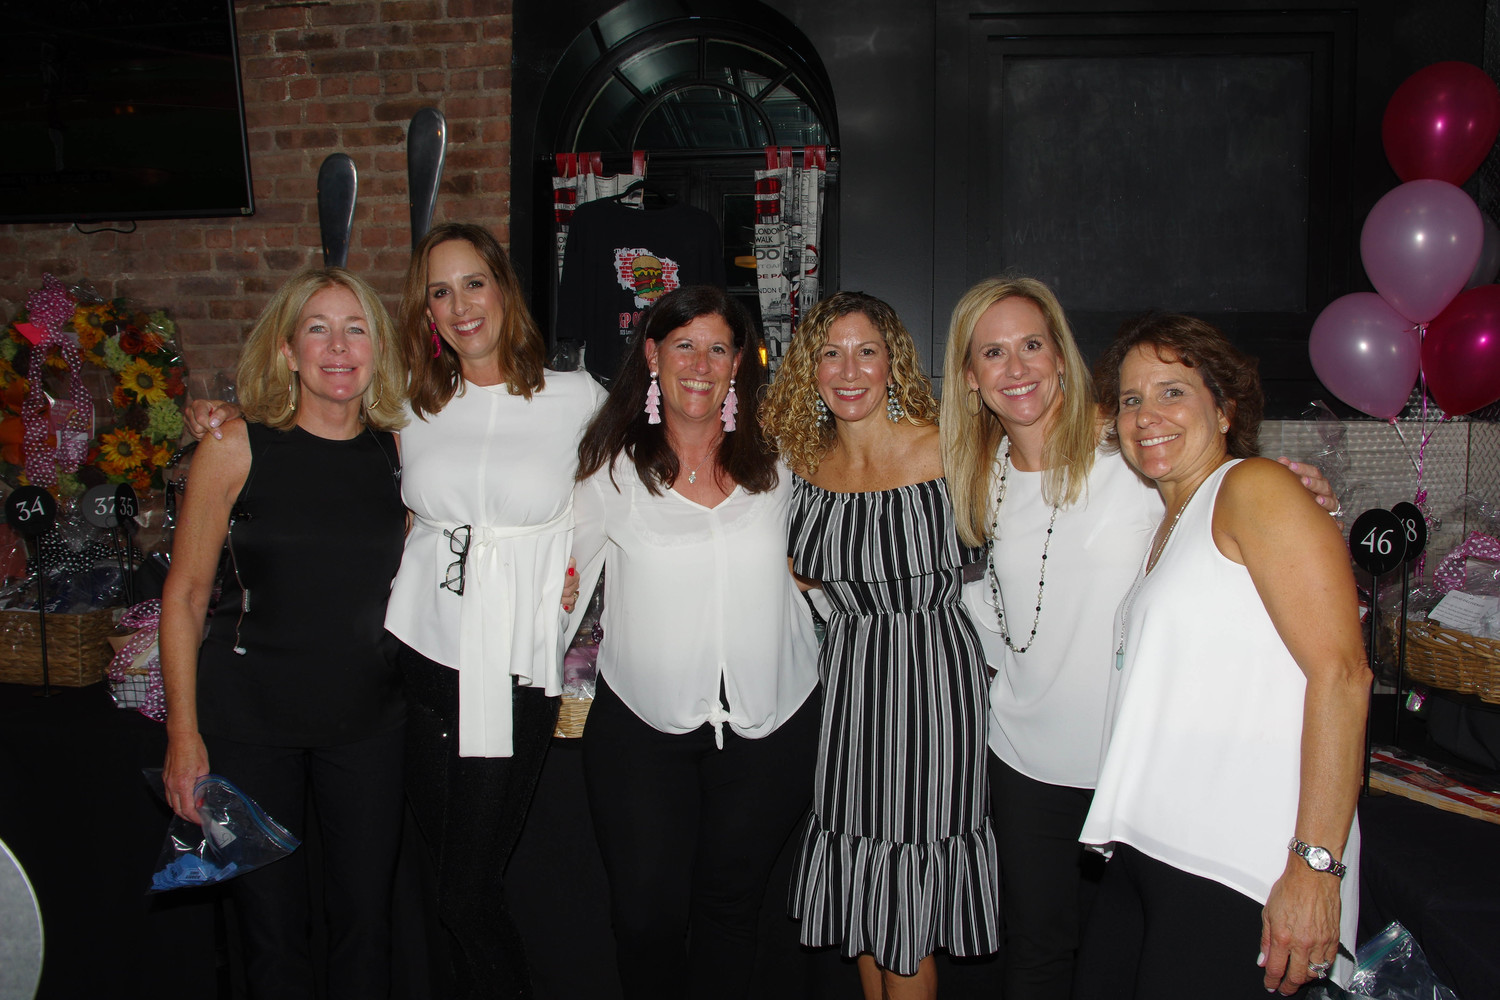 Rockville Centre Breast Co-presidents Peggy McDonald and Erin O'Sullivan, from left, joined fellow coalition members Kathy Baxley, Christina Belling, Laura Altman and Pauline Festa.